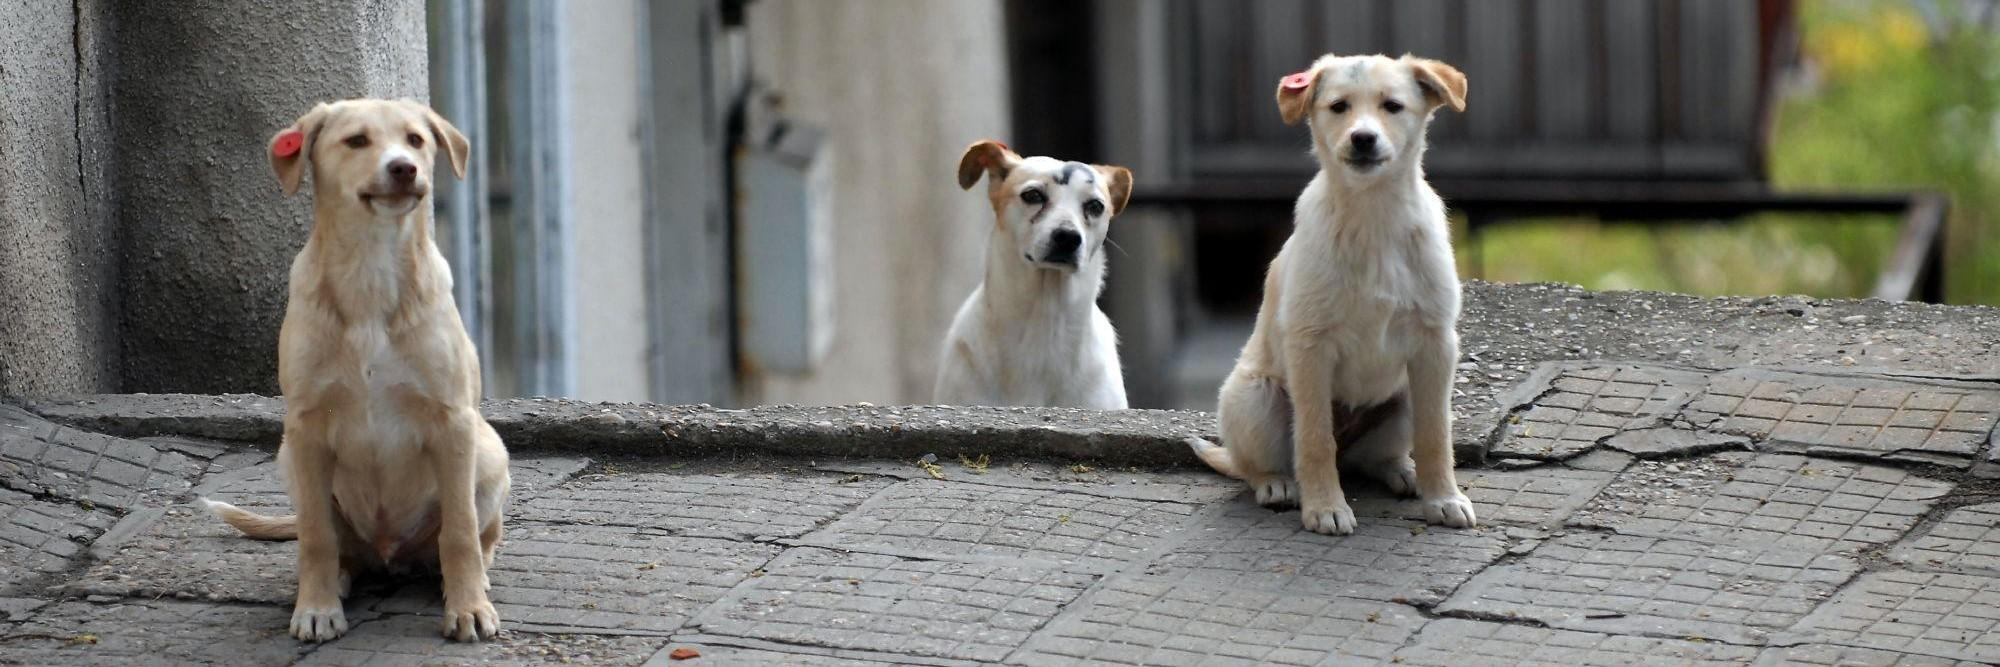 Stray dogs in Bulgaria